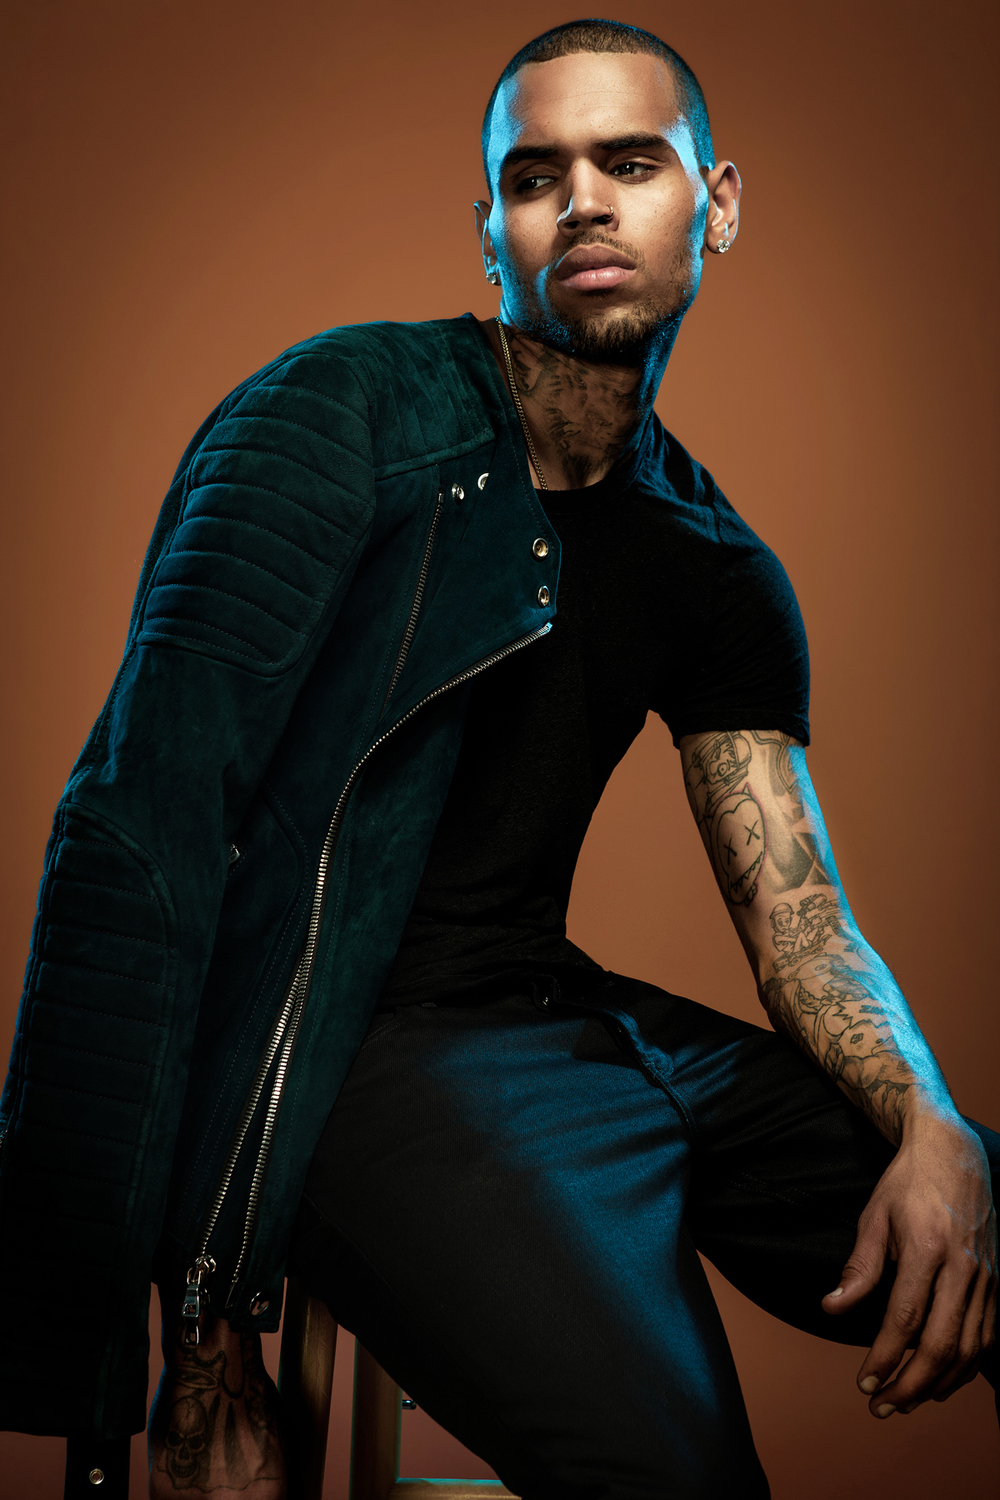 Chris_Brown_AnnexMan-330_Retouched.jpg